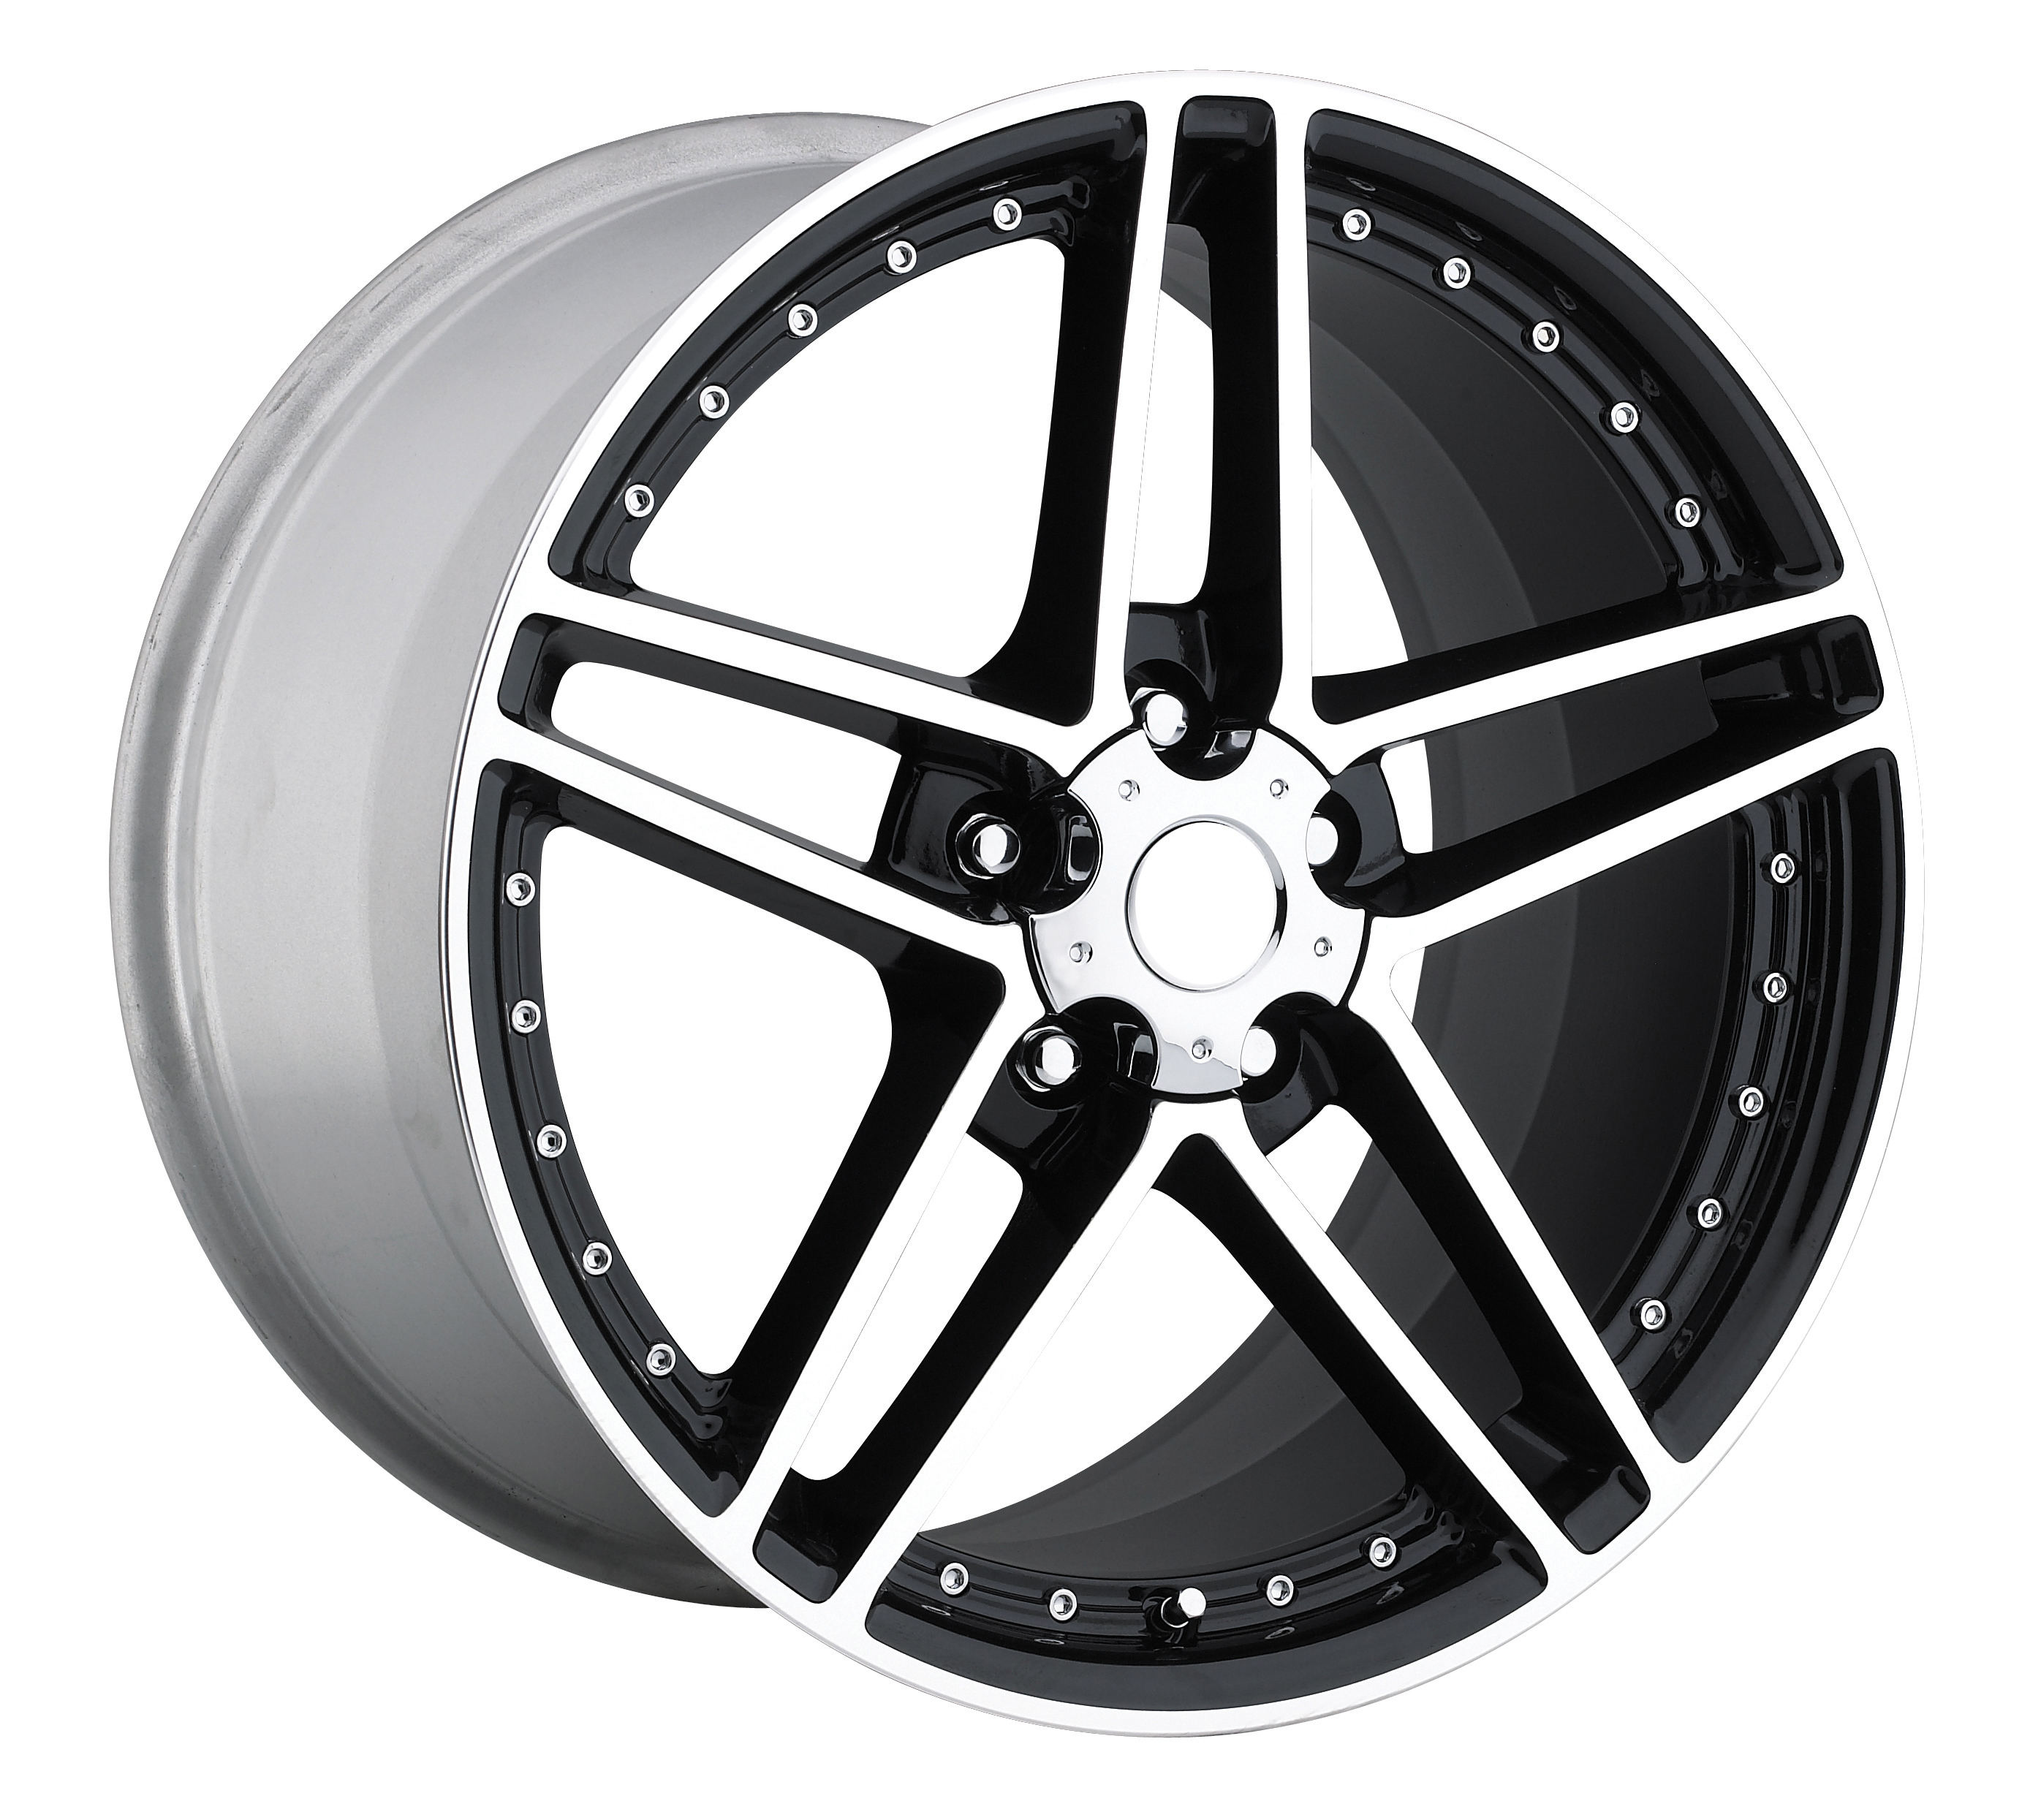 Chevrolet Corvette 1997-2012 20x11 5x4.75 +79 - C6 Z06 Motorsport Wheel -  Black Machine Face With Cap